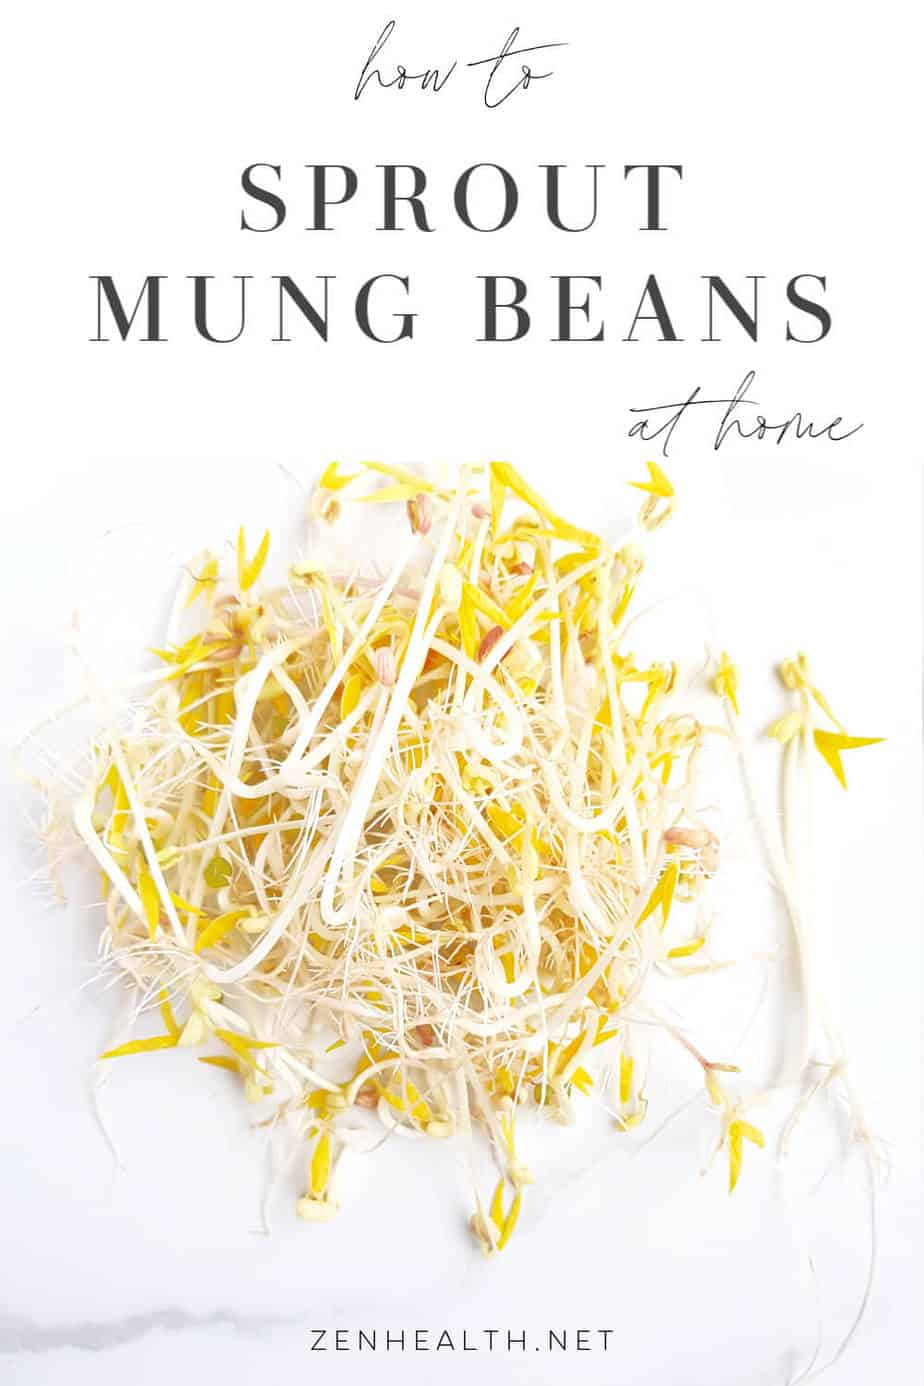 How to grow mung bean sprouts at home | How to sprout mung beans at home